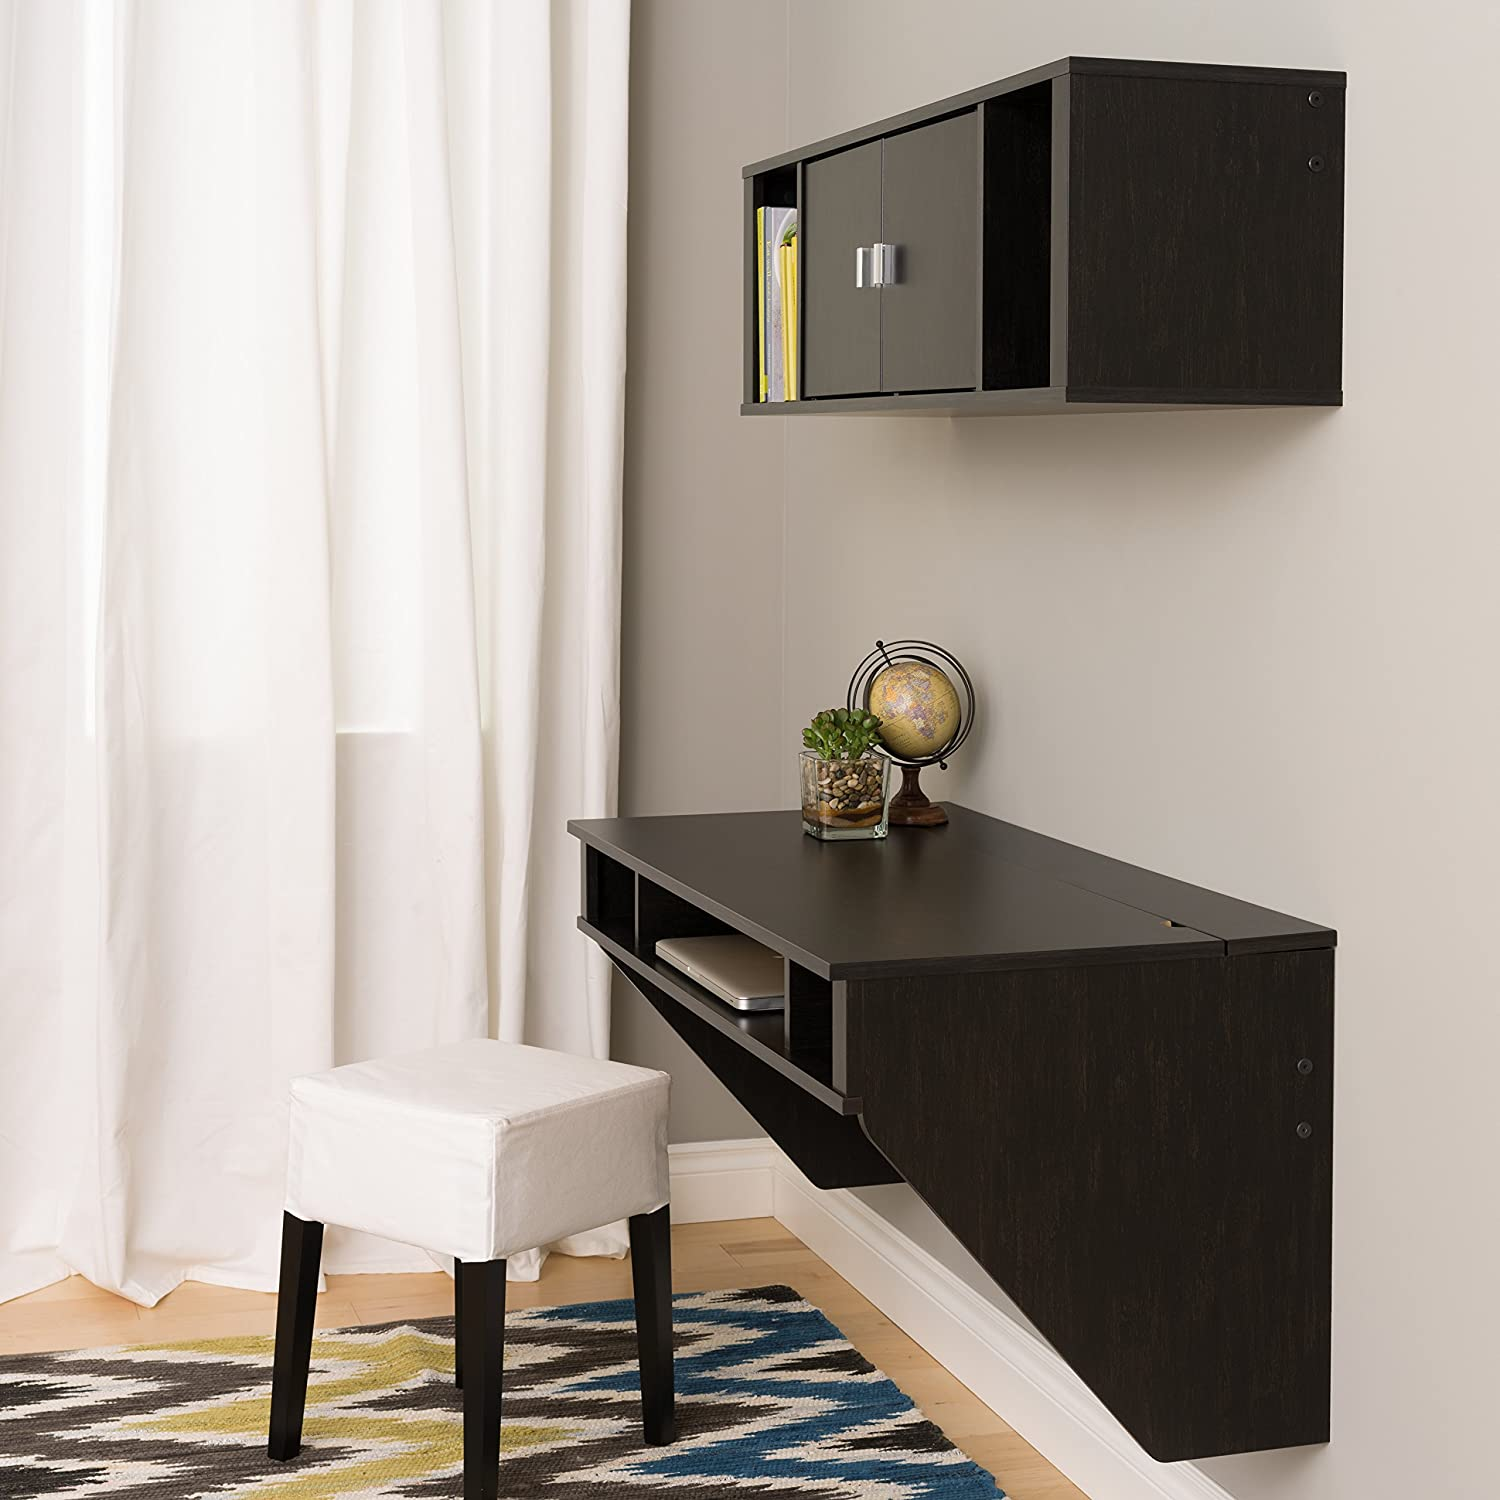 Amazon.com: Wall Mounted Designer Floating Desk in Washed Ebony ...